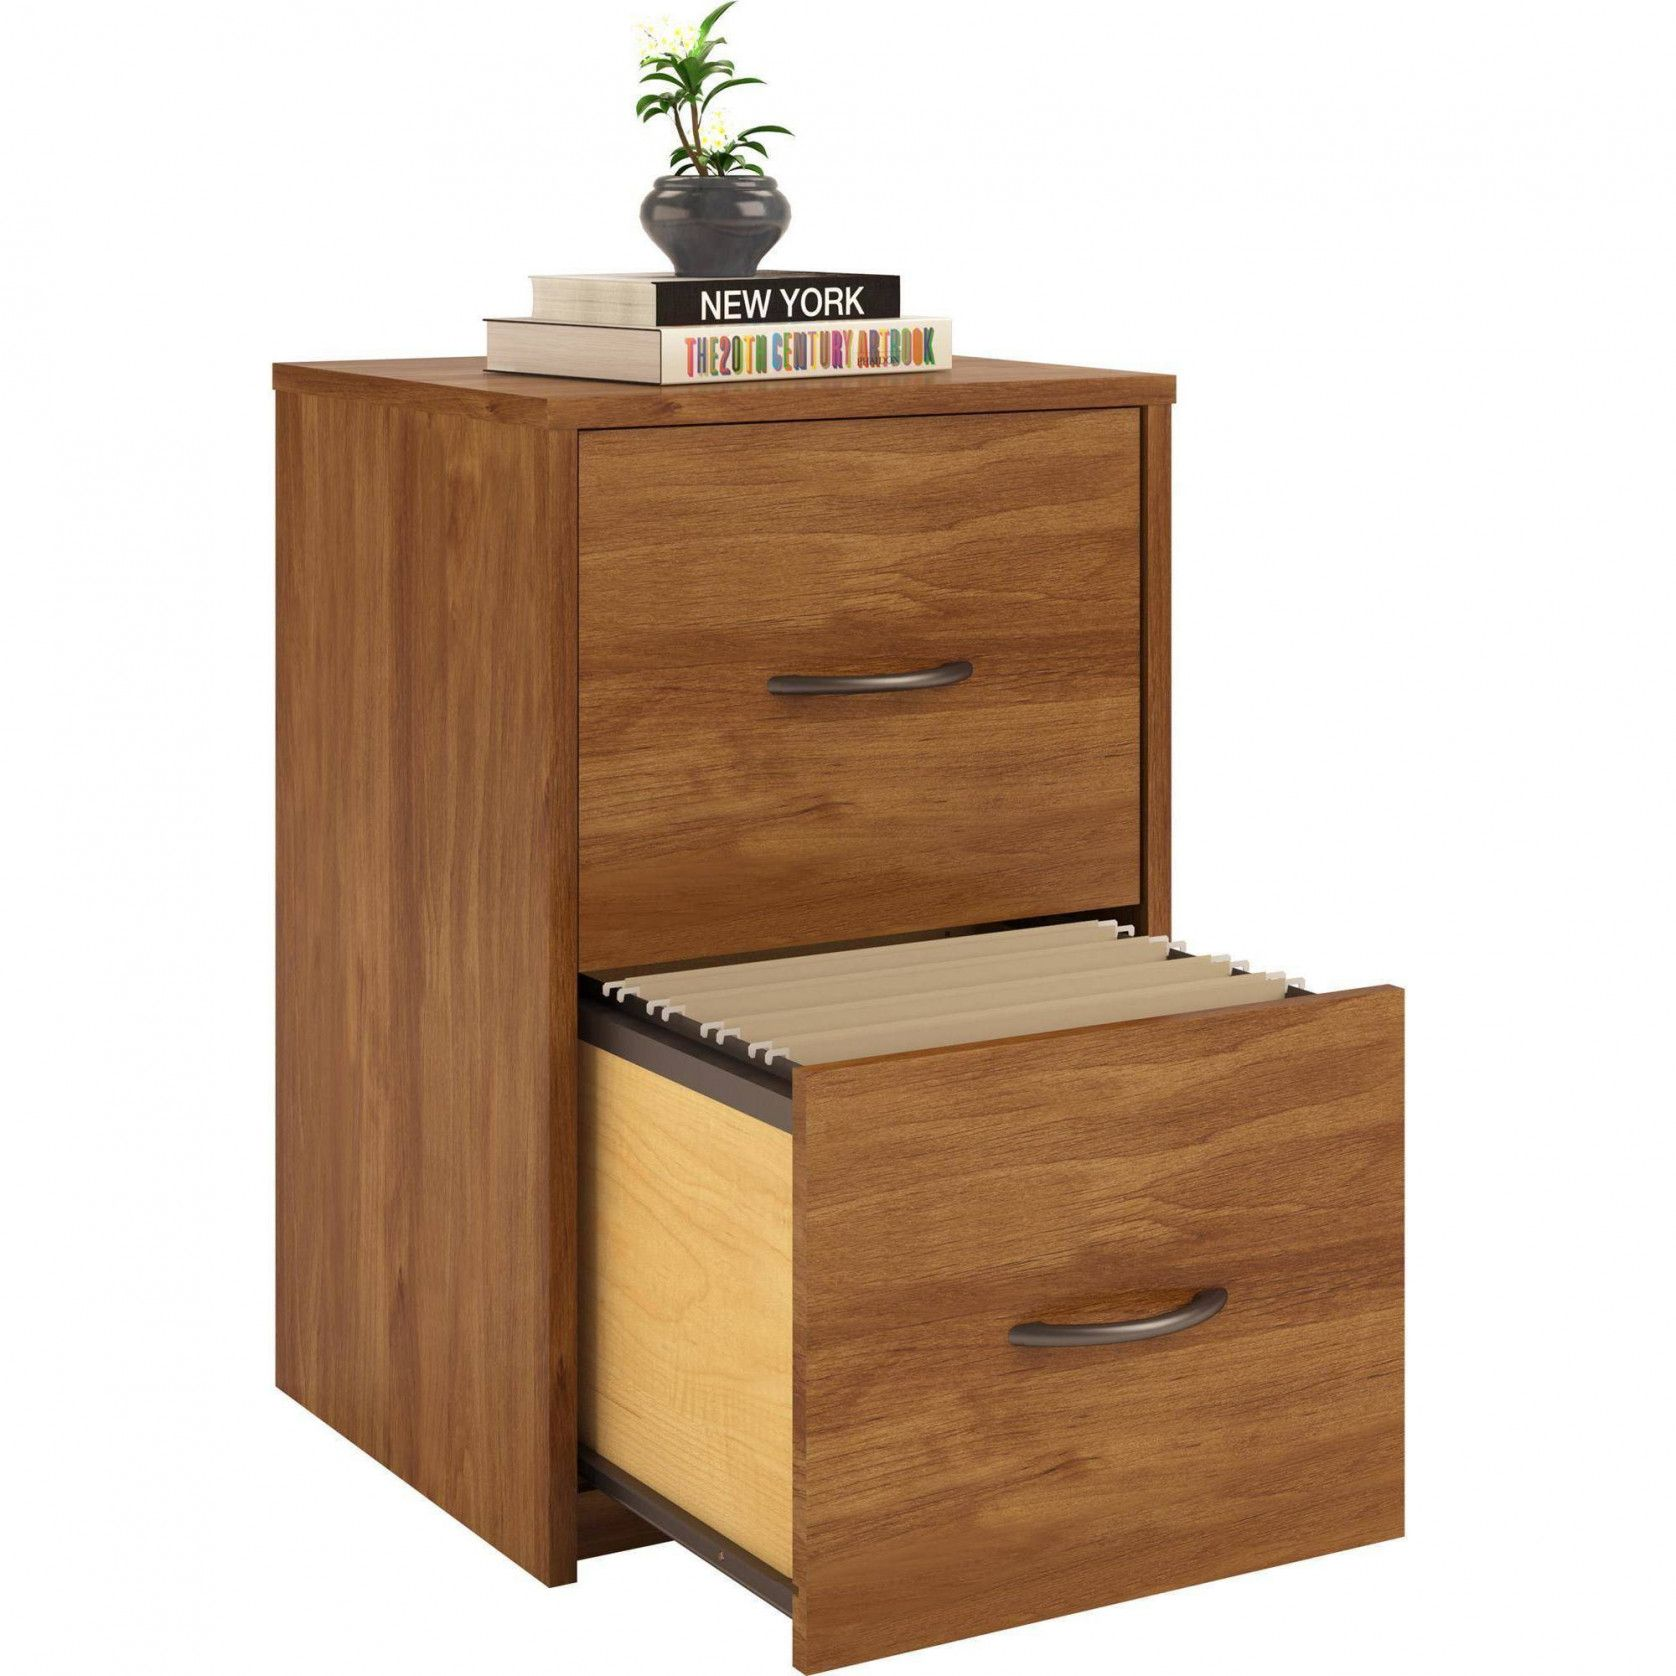 2019 2 Drawer Wooden Filing Cabinets For Home Kitchen Remodeling Ideas On A Small Budget Check More At Http Ww Filing Cabinet 2 Drawer File Cabinet Cabinet